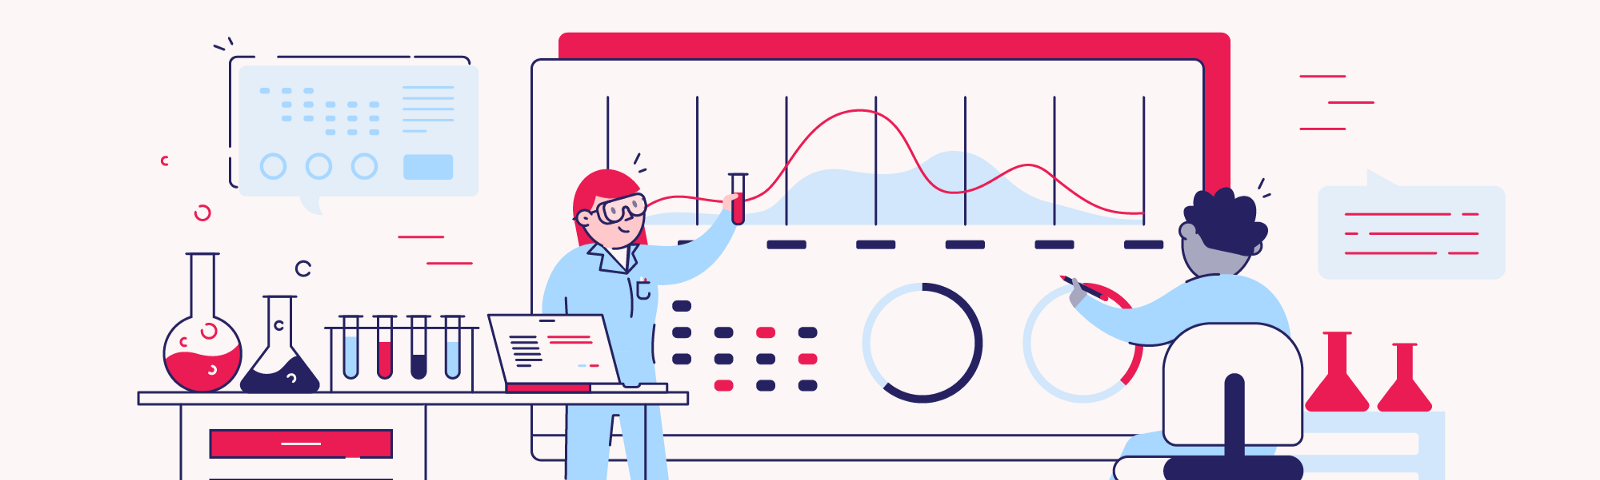 Illustrated scientists working with data visualizations